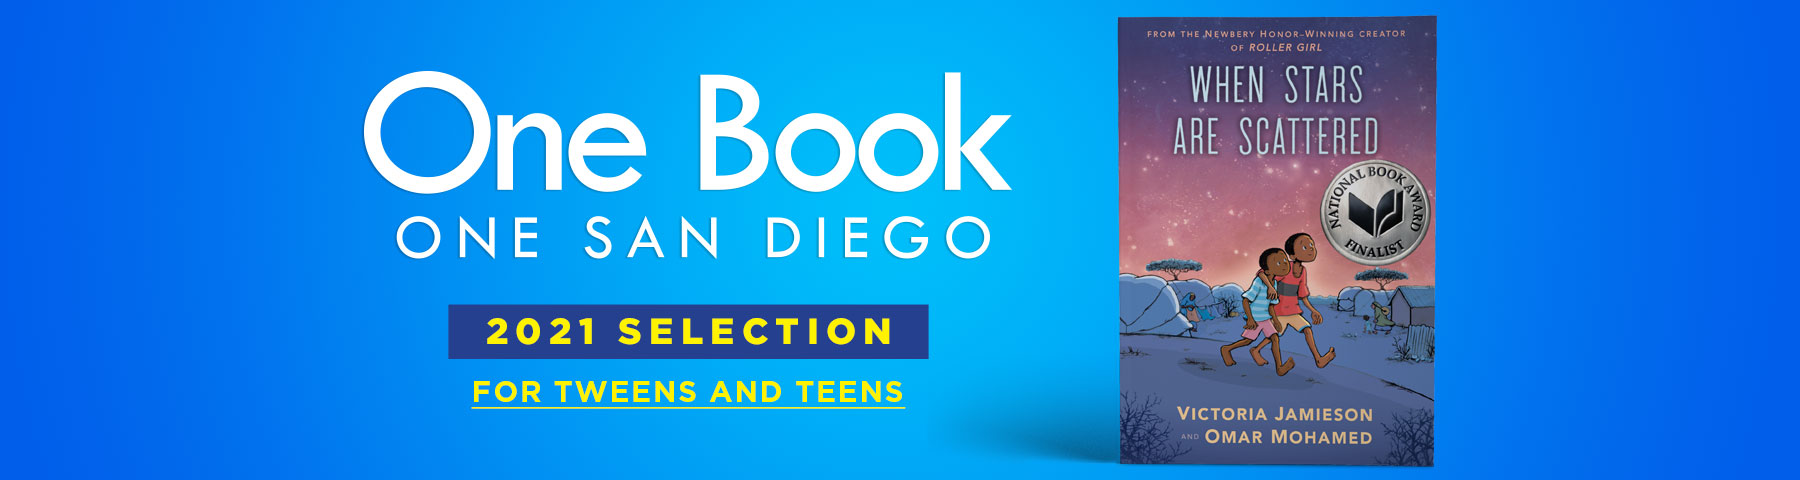 One Book One San Diego for Teens banner